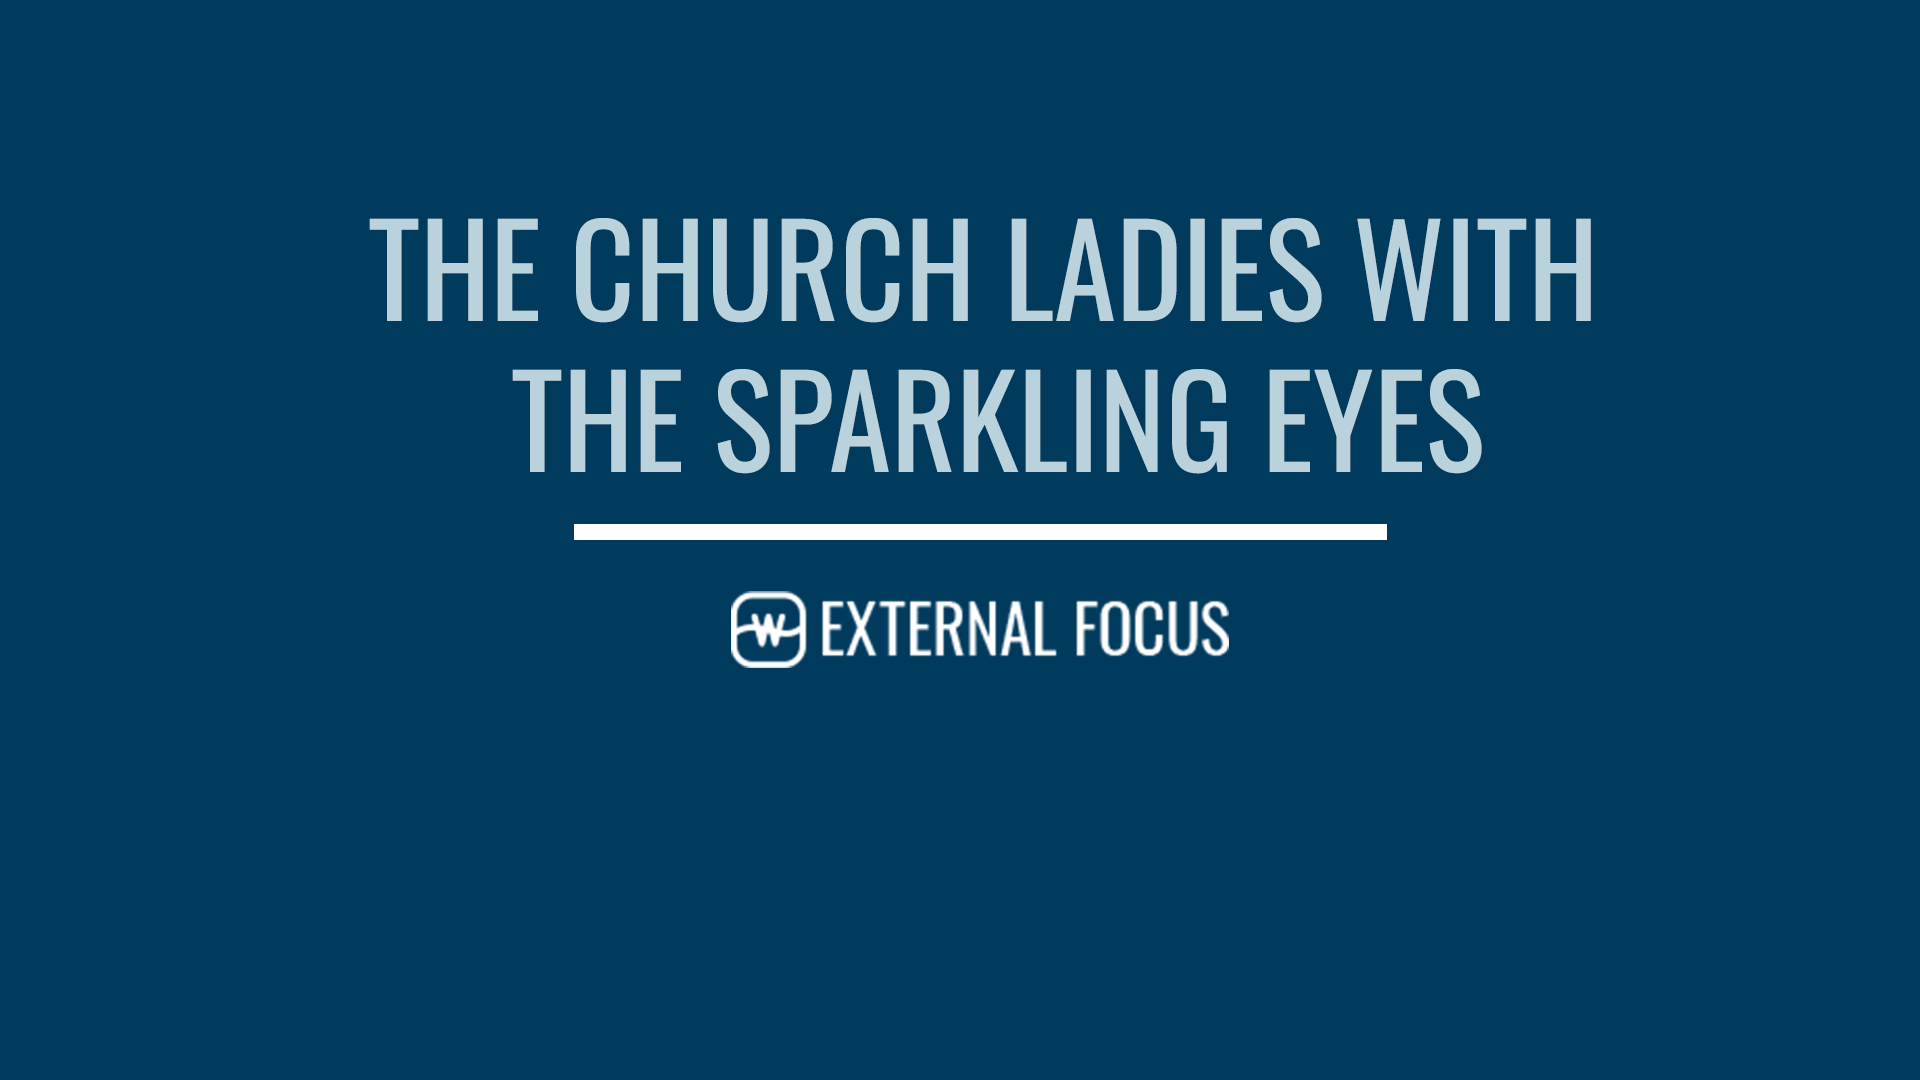 The Church Ladies with the Sparkling Eyes